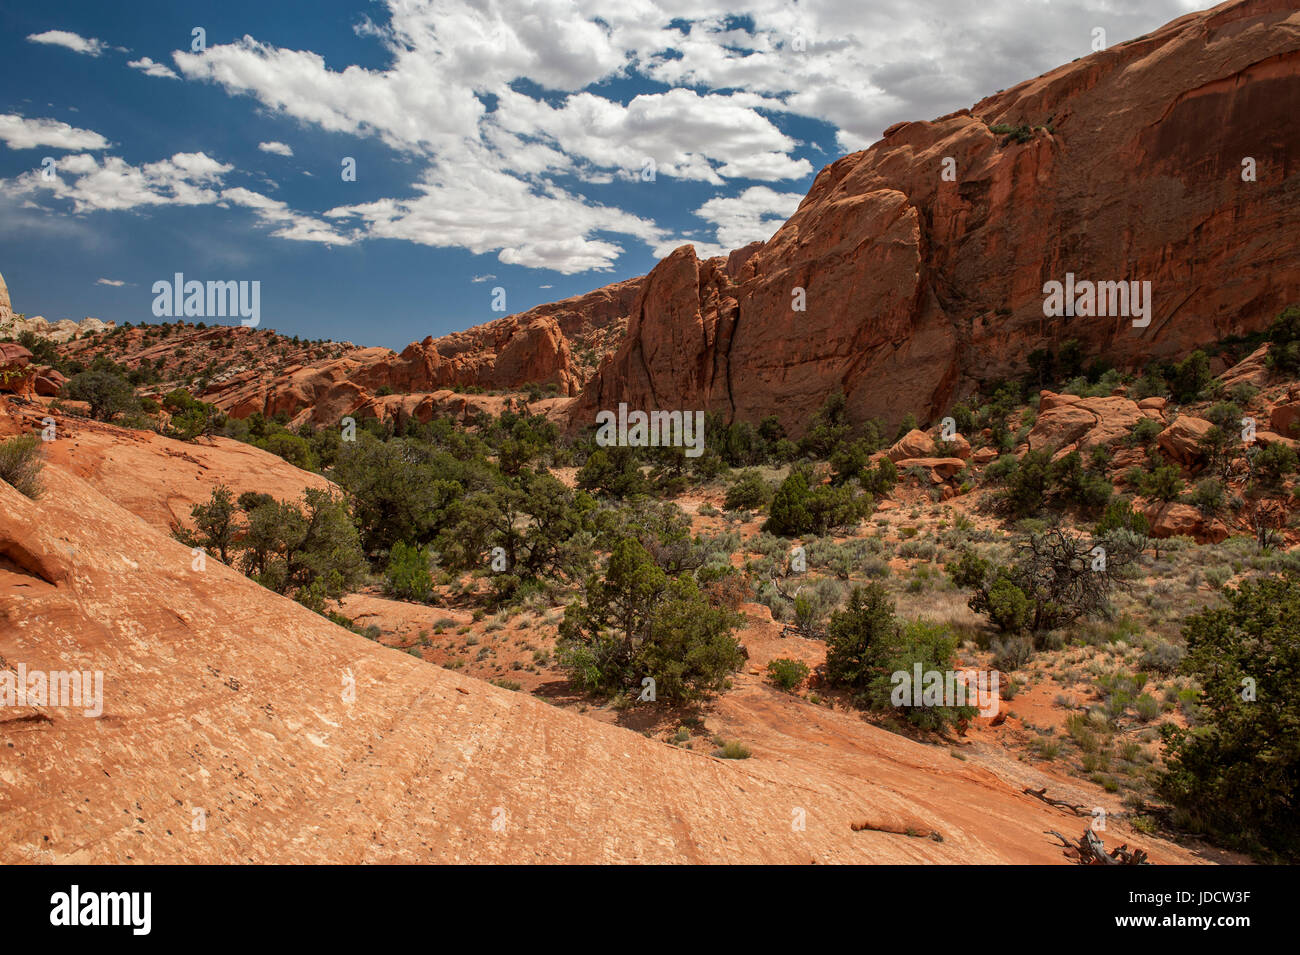 Lower Muley Twist Canyon, as seen from the trailhead in Capitol Reef National Park, Utah - Stock Image